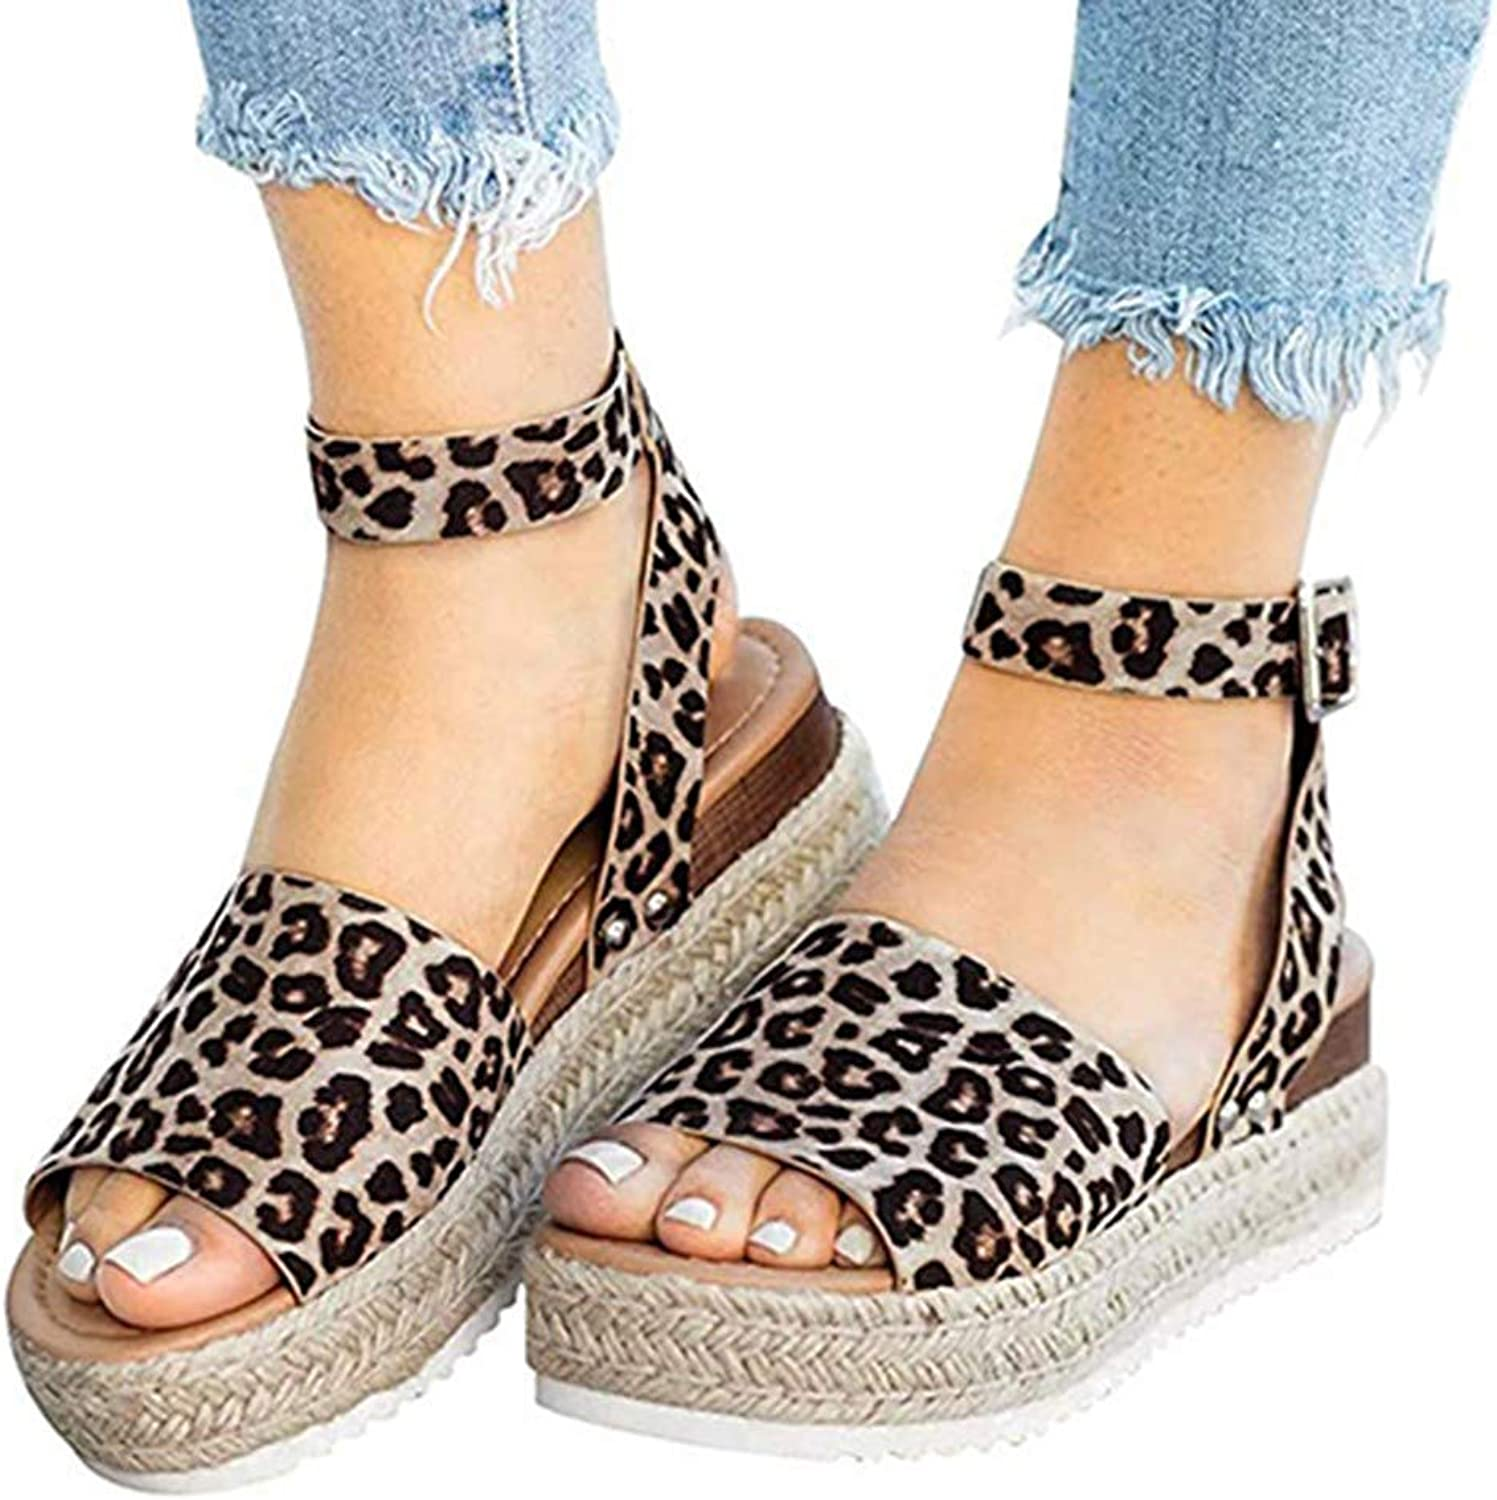 Sandals Wedges Summer Retro Peep Toe Buckle Ankle Strappy for Ladies Fashion Flat Lace Up 5 cm High Heels Leather Slingback shoes Casual Comfy Leopard Espadrilles,Leopard,43